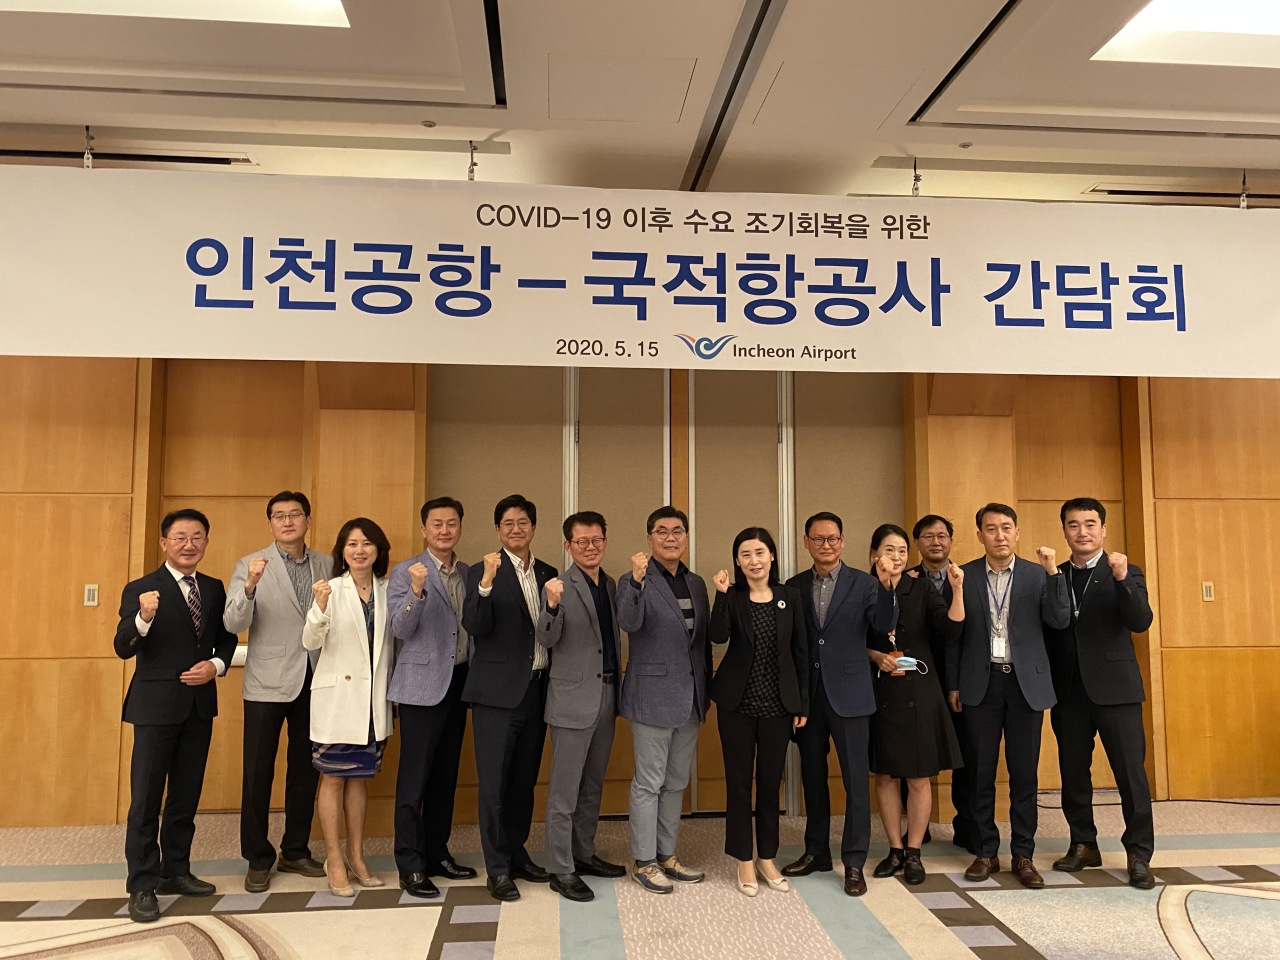 Officials from air carriers Korean Air, Asiana Airlines, Air Busan, Air Seoul, Jeju Air, Jin Air and T'way; Incheon International Airport Corp.'s future business division head, Lee Hee-jeong (sixth from right); and the airport's hub strategy division head, Cho Woo-ho (far right); pose for a photo on Friday after a meeting at Grand Hyatt Incheon. (IIAC)